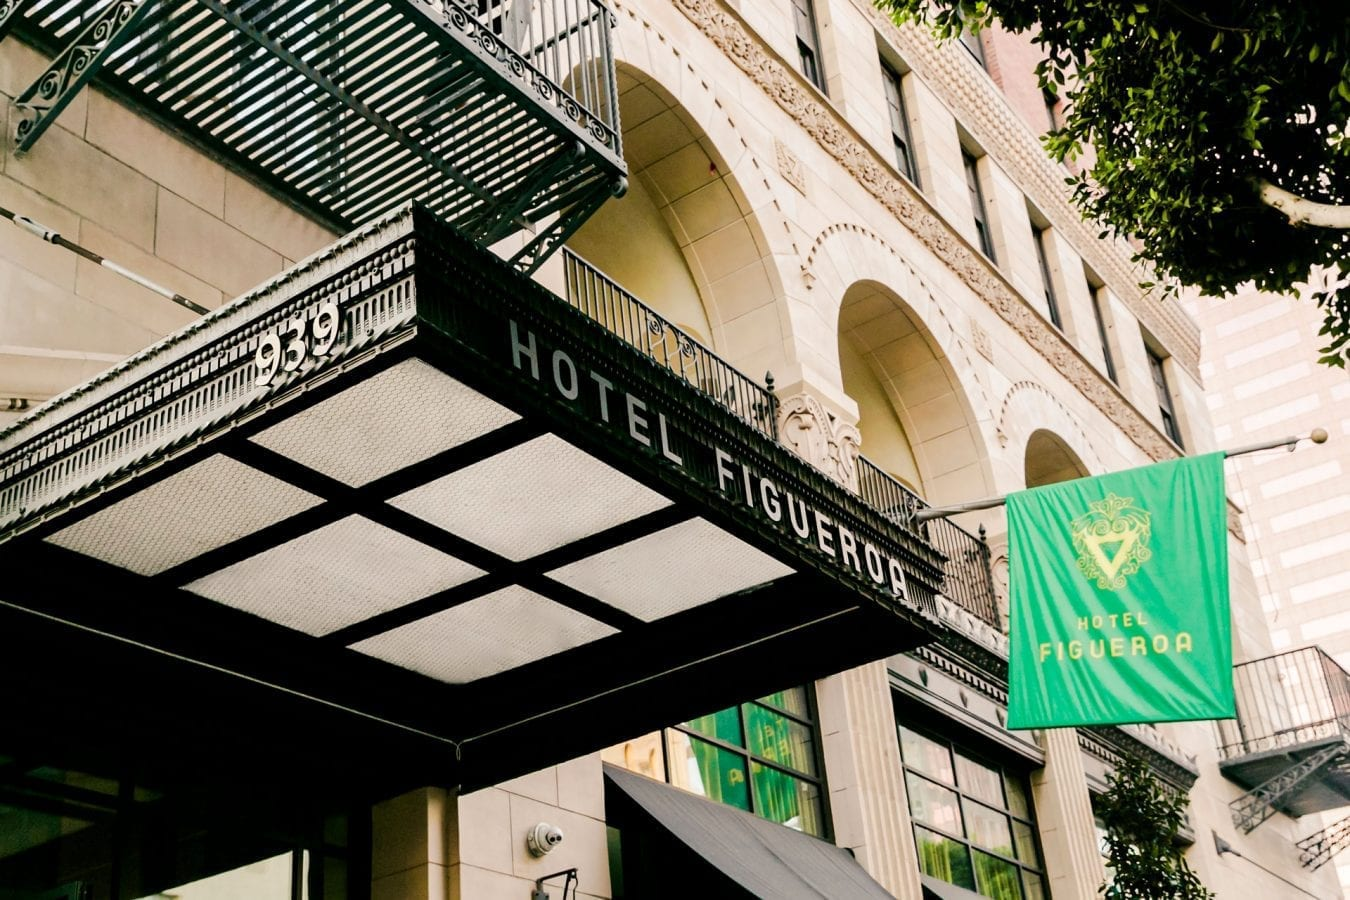 Frequently Asked Questions Hotel Figueroa Dtla